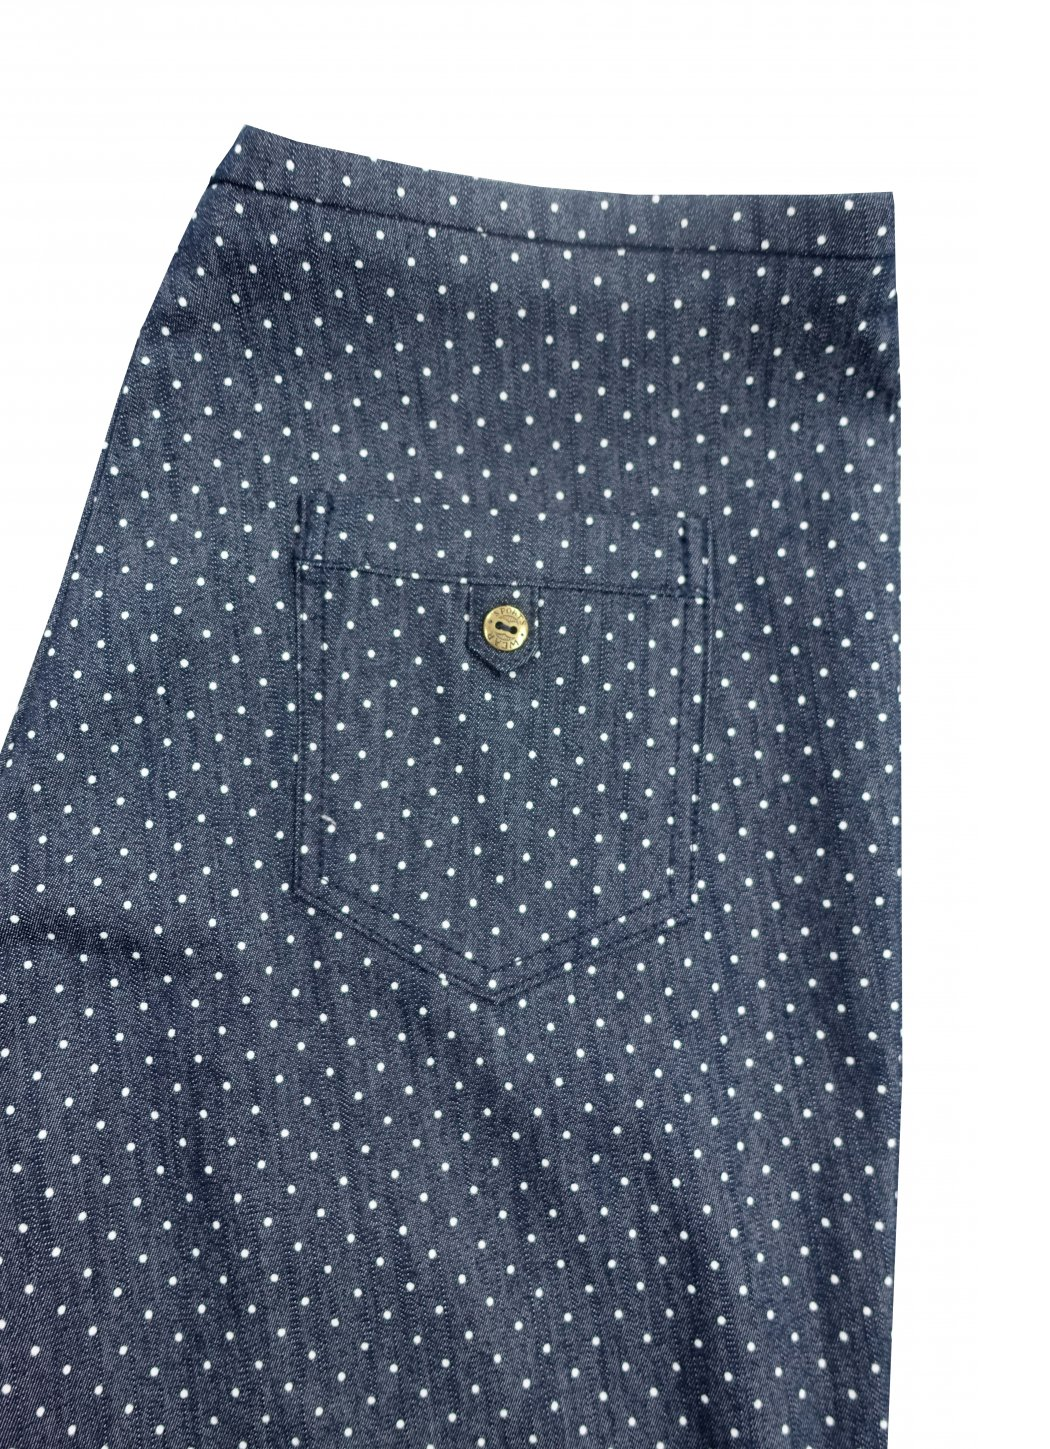 Dotted jeans Female dress